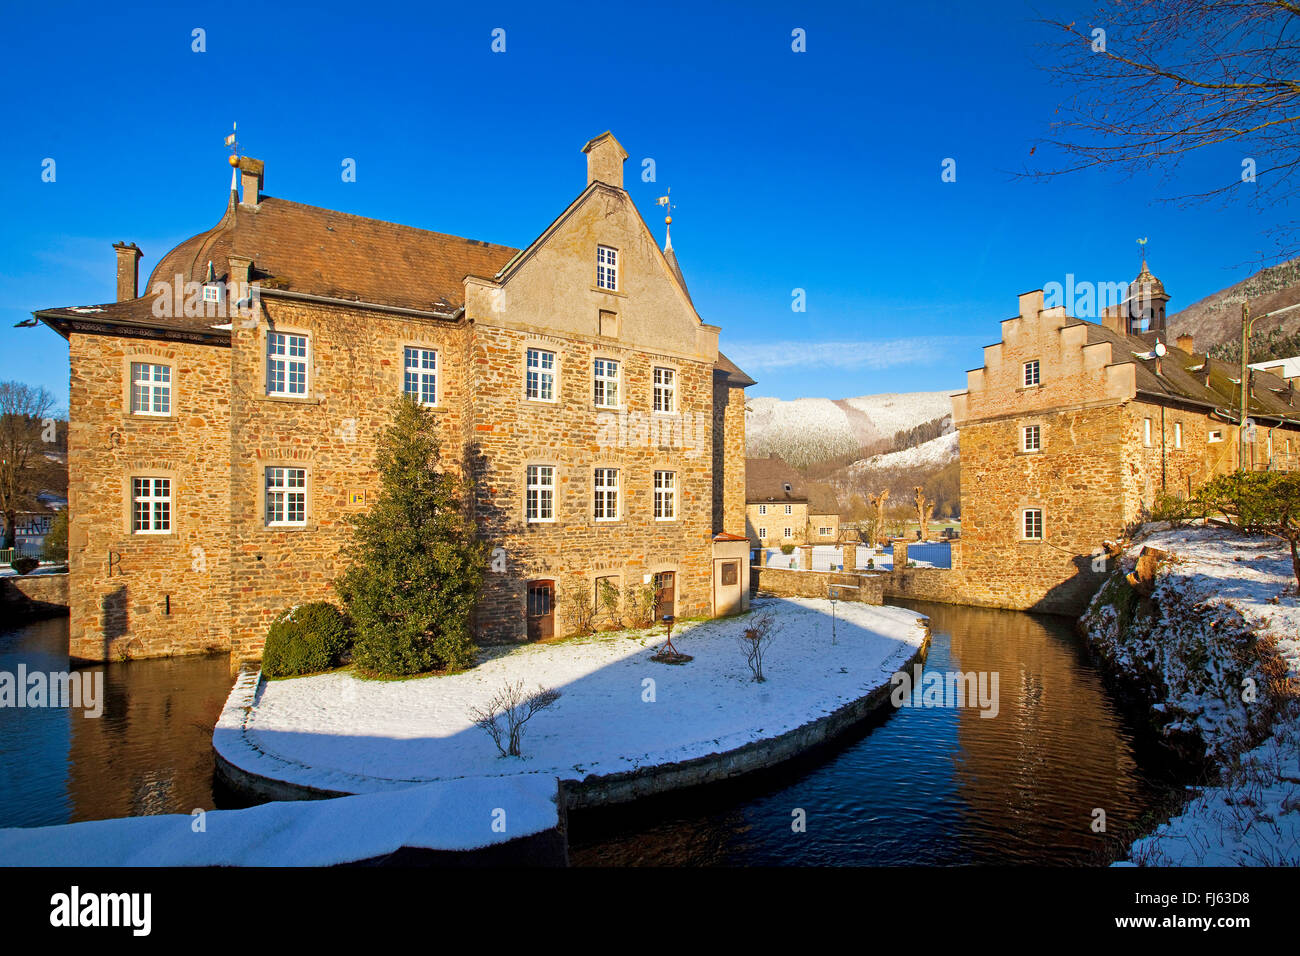 Castle Lenhausen in winter, Germany, North Rhine-Westphalia, Sauerland, Finnentrop - Stock Image